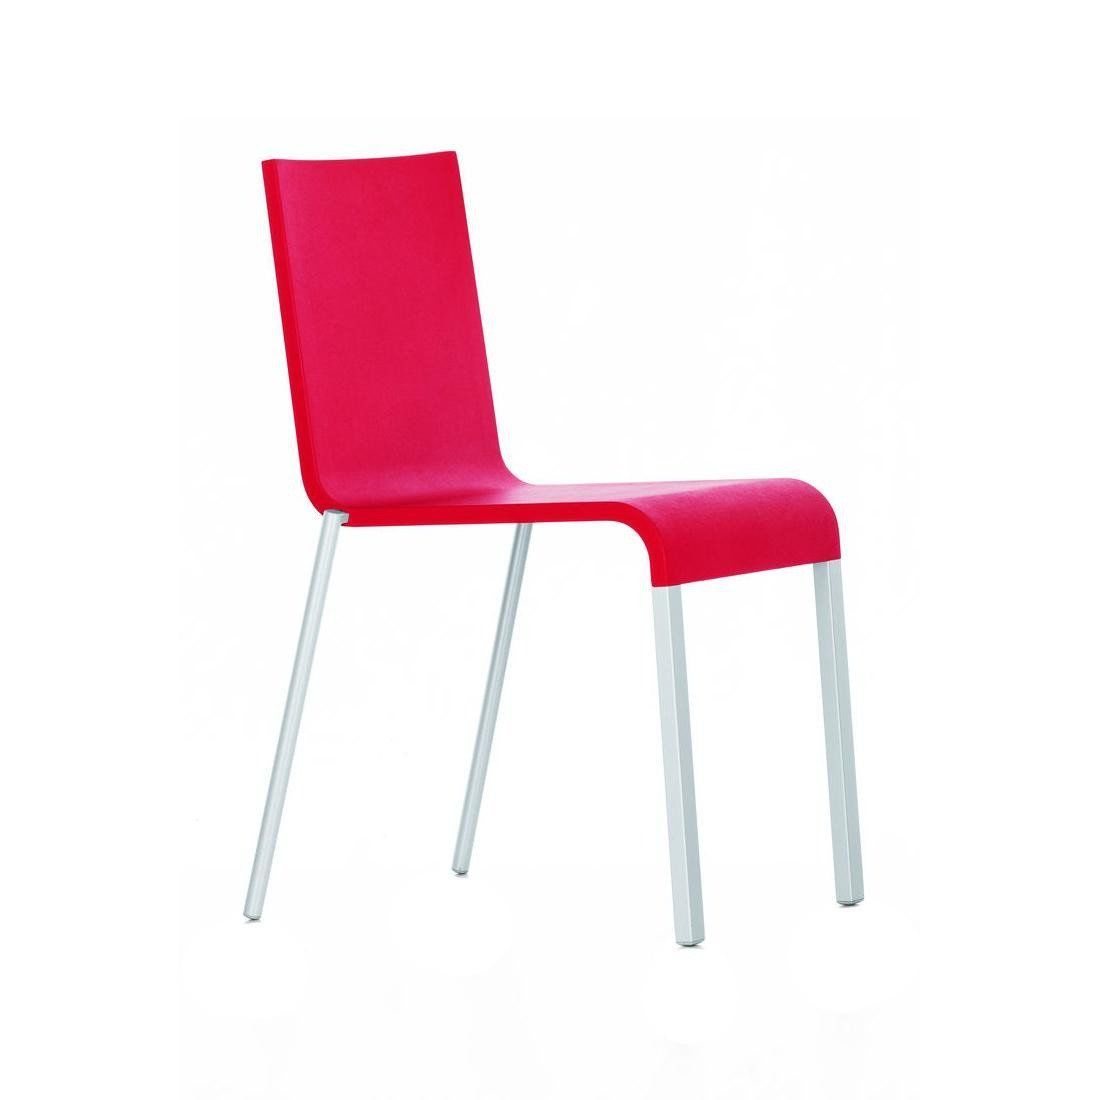 03 Chaise empilable Vitra